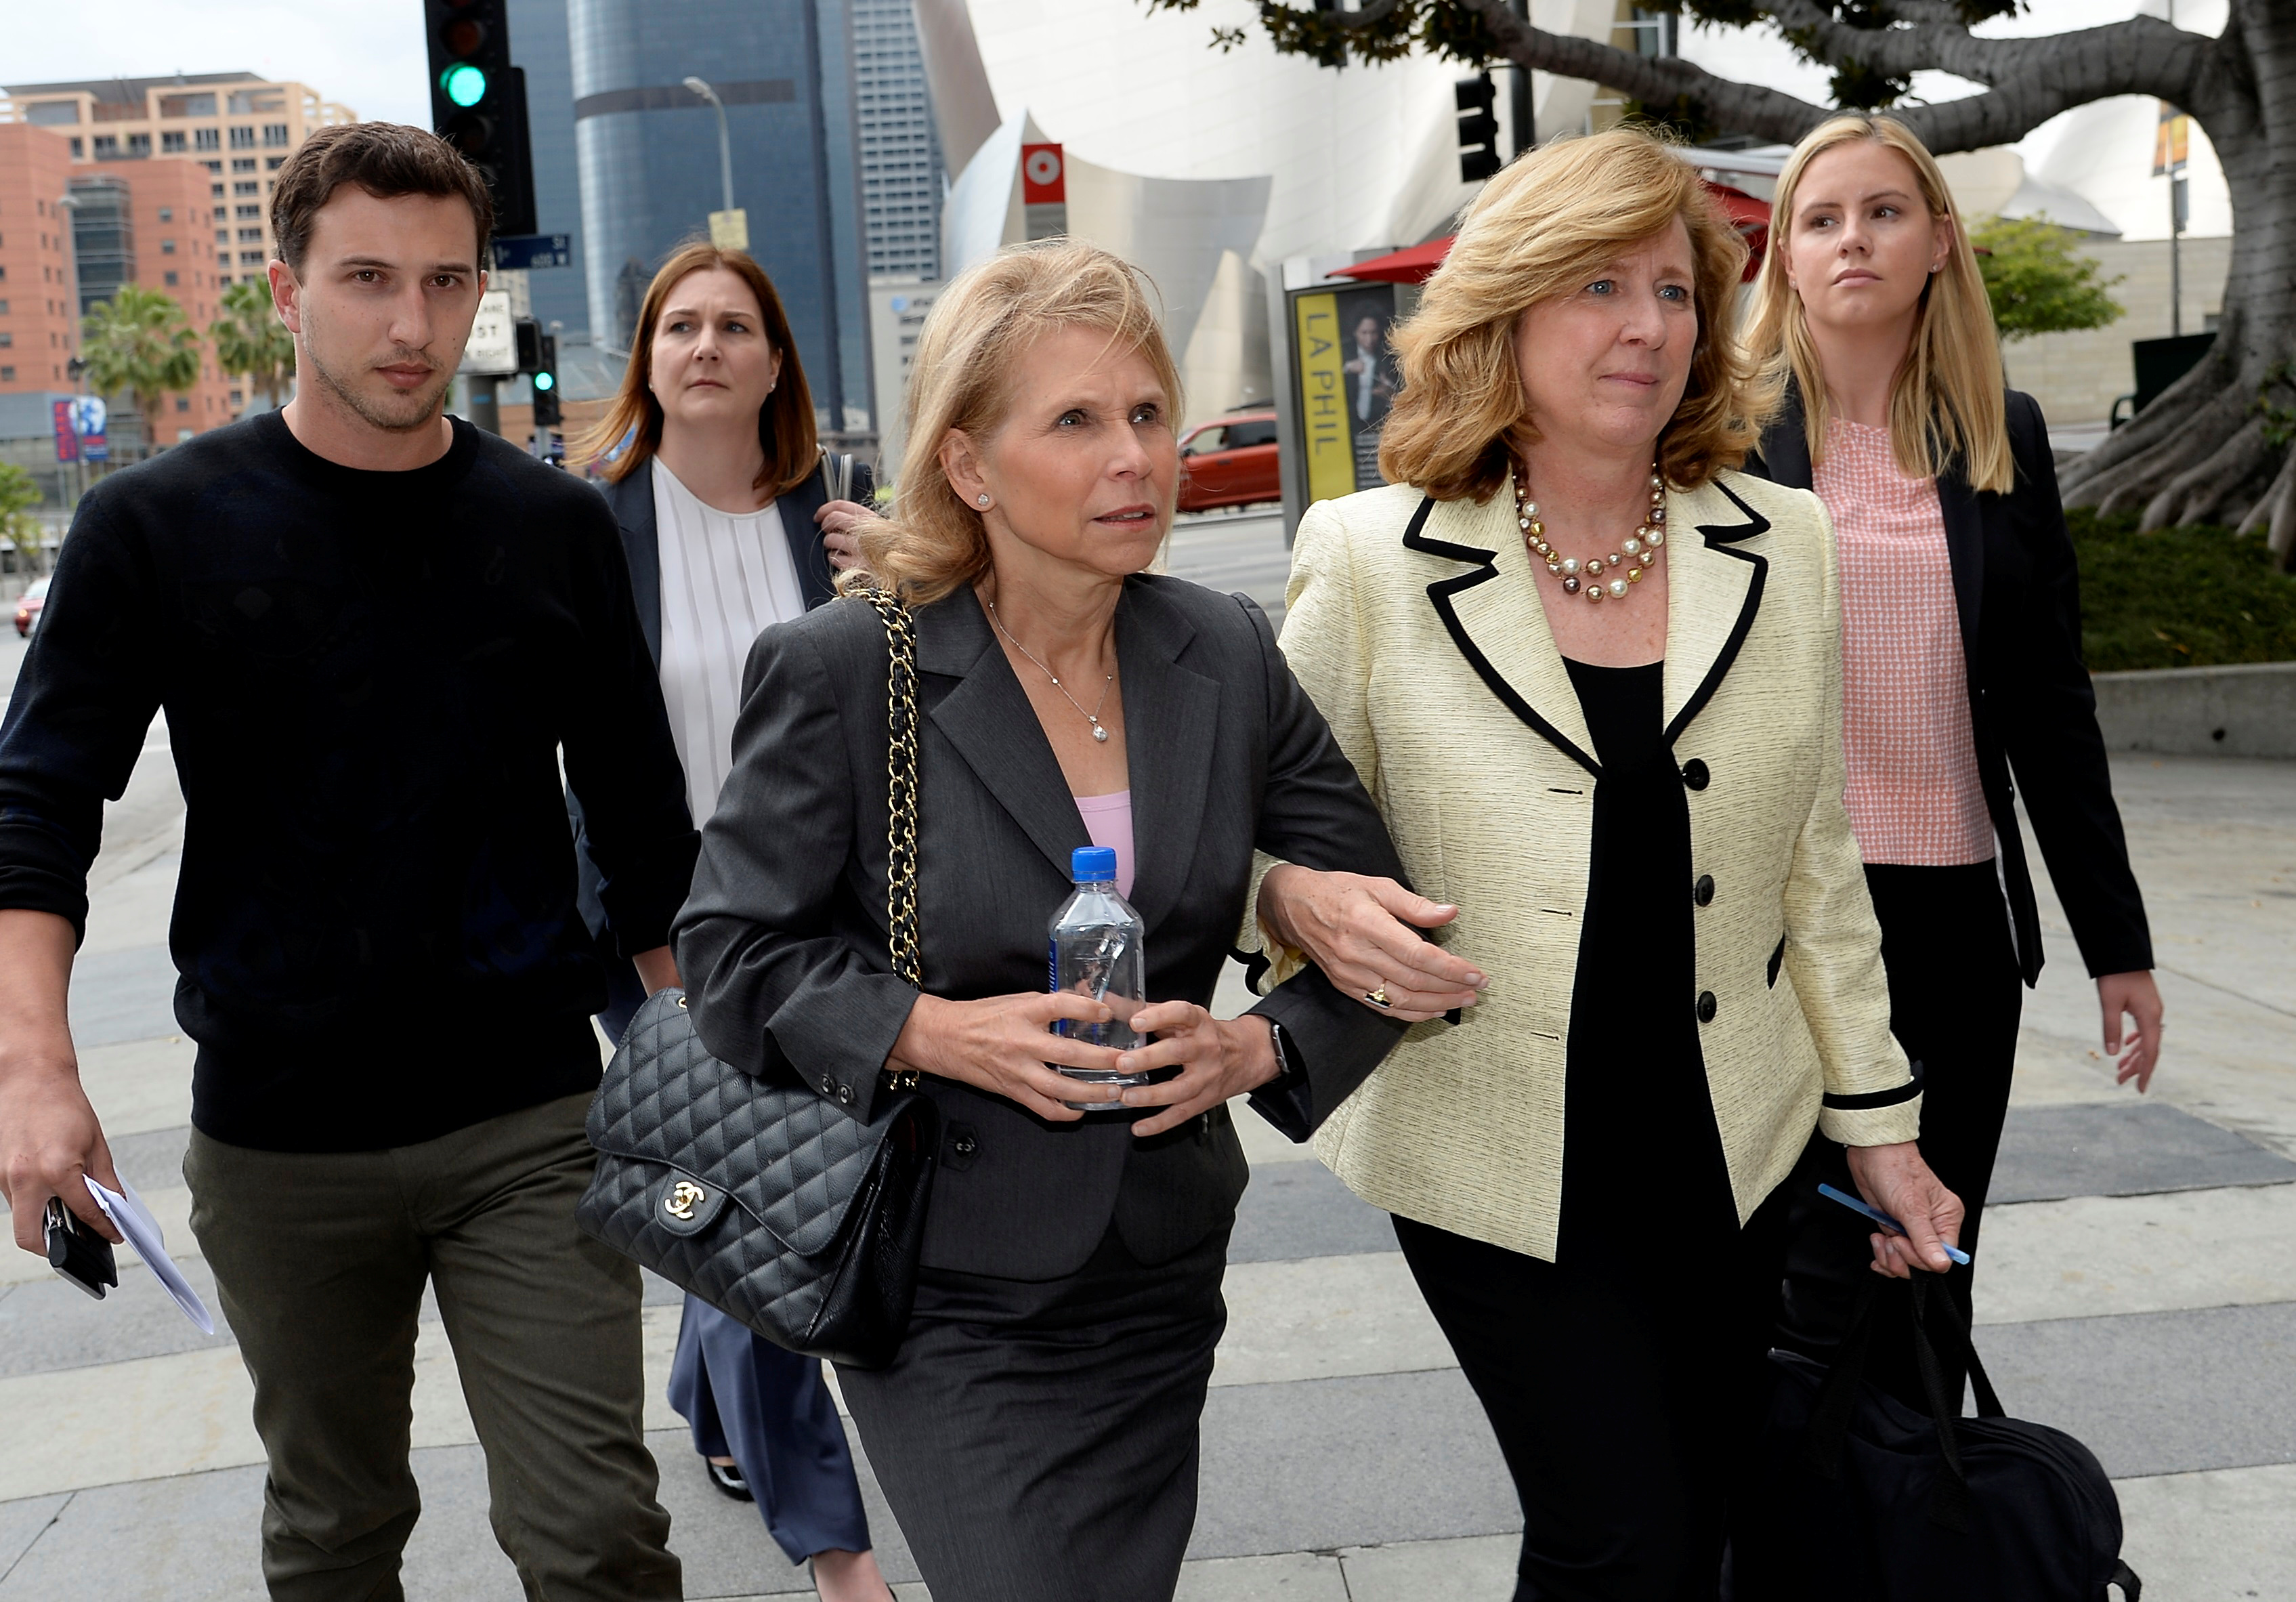 Sumner Redstone's daughter Shari Redstone leaves a downtown courthouse in Los Angeles